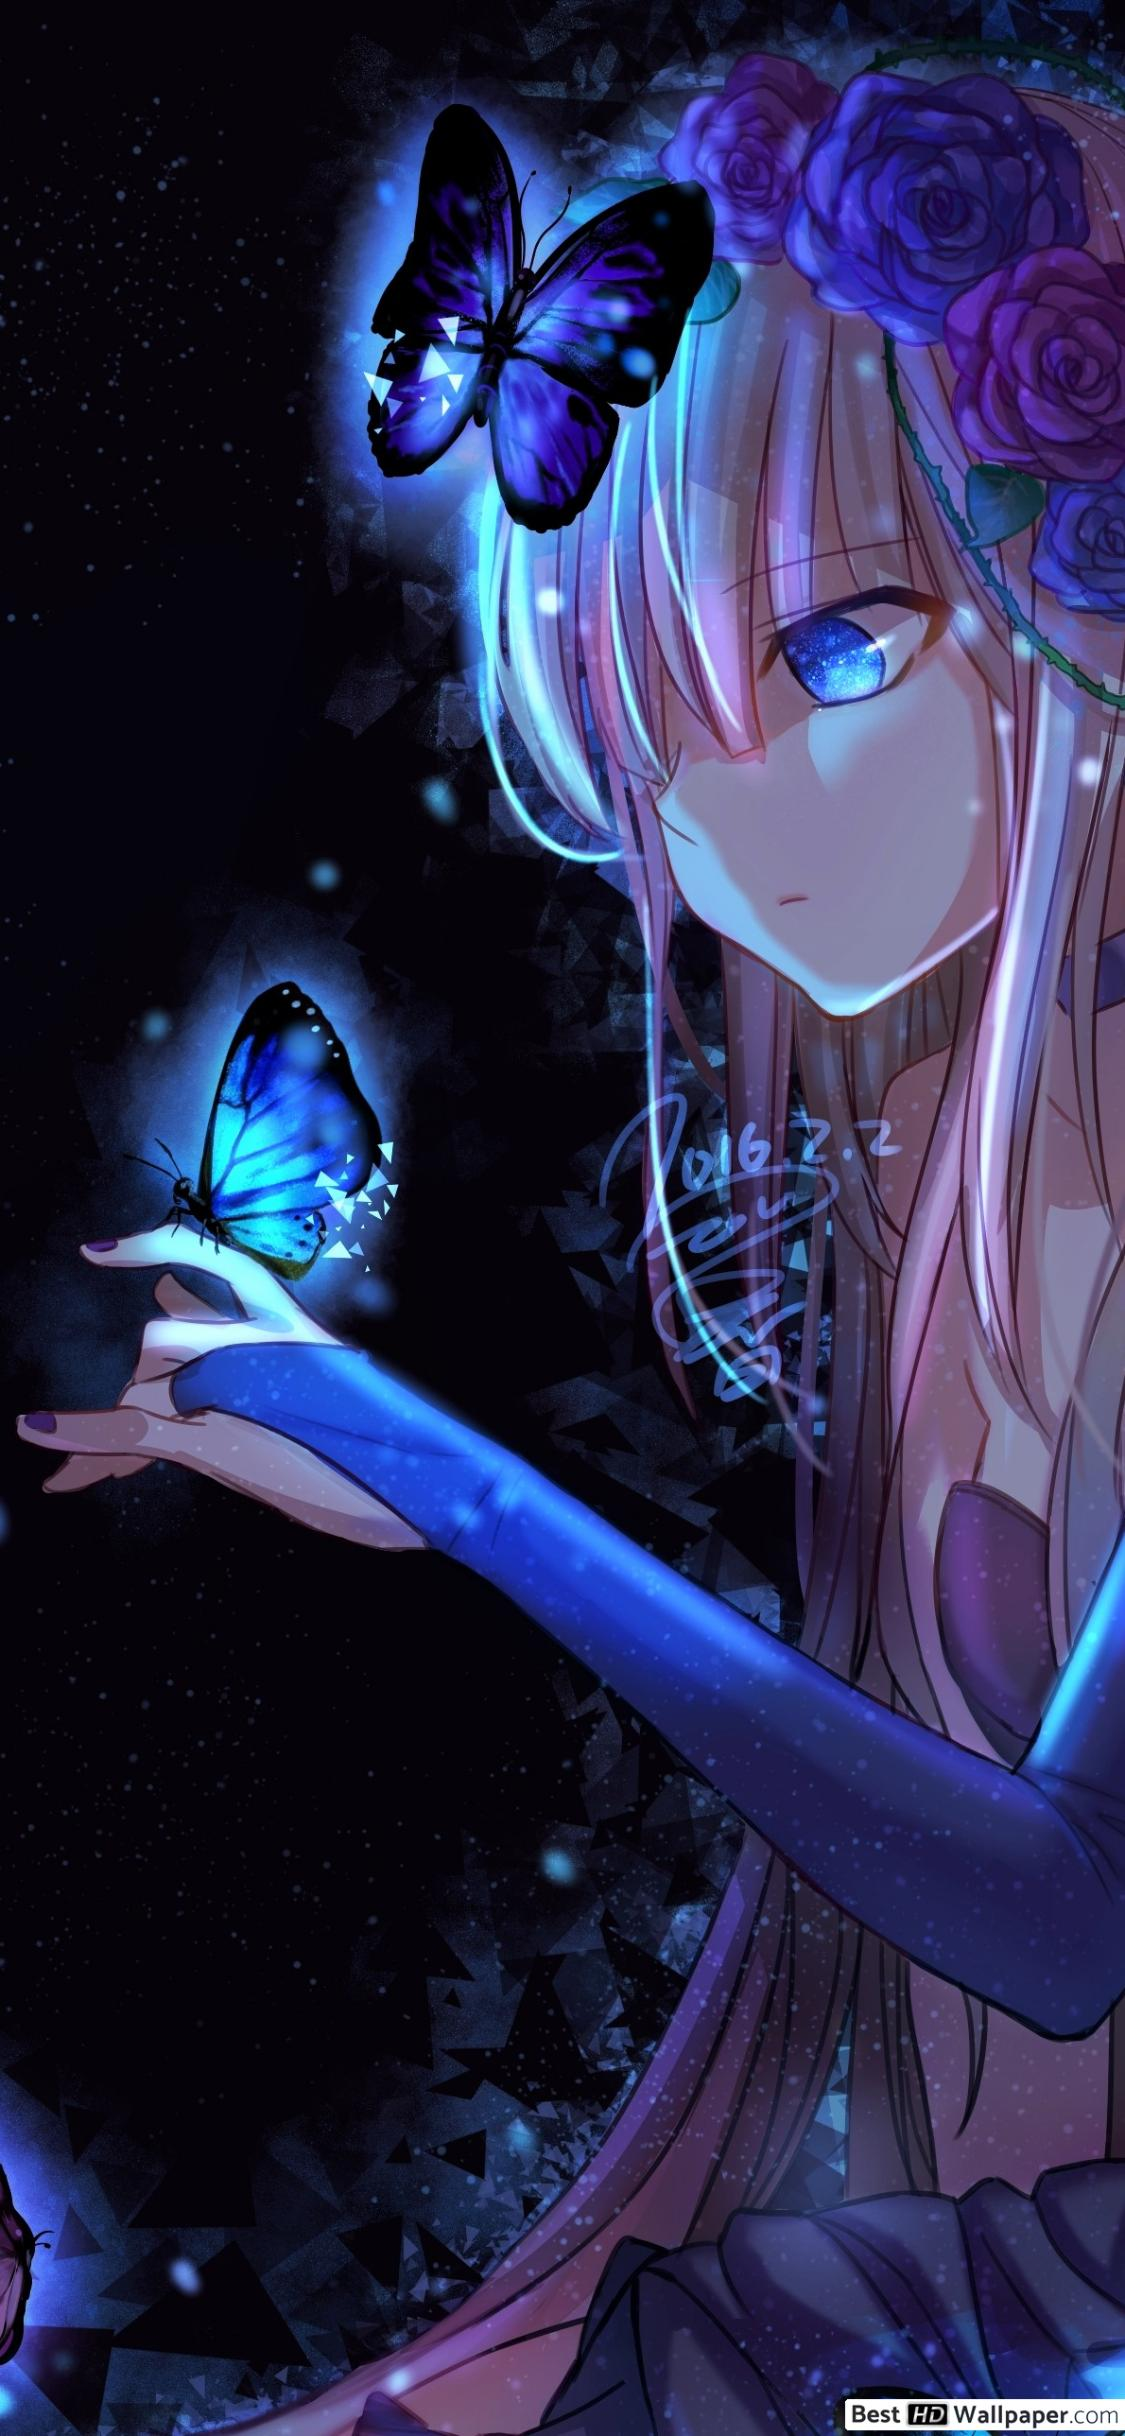 Anime Girl Phone HD Wallpapers - Wallpaper Cave